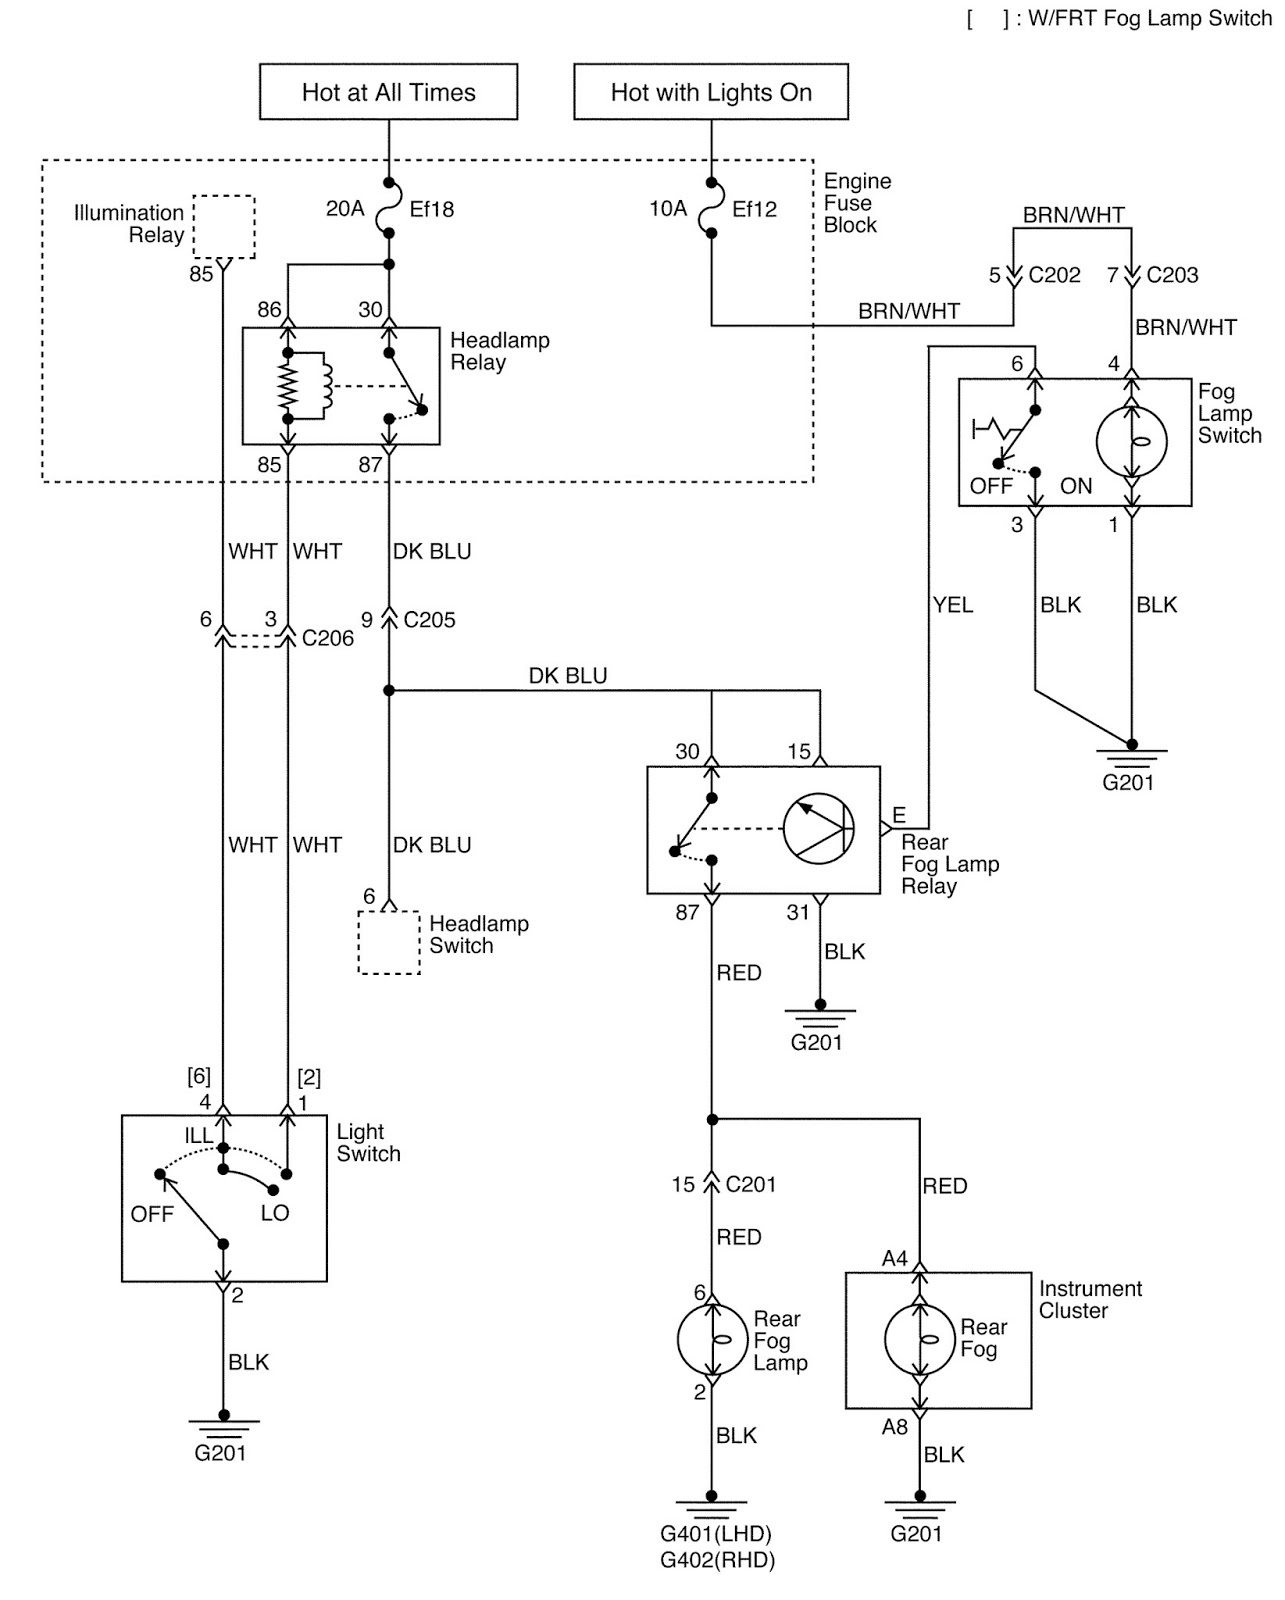 Daewoo matiz circuit diagram daewoo matiz car lighting systems schematic and routing